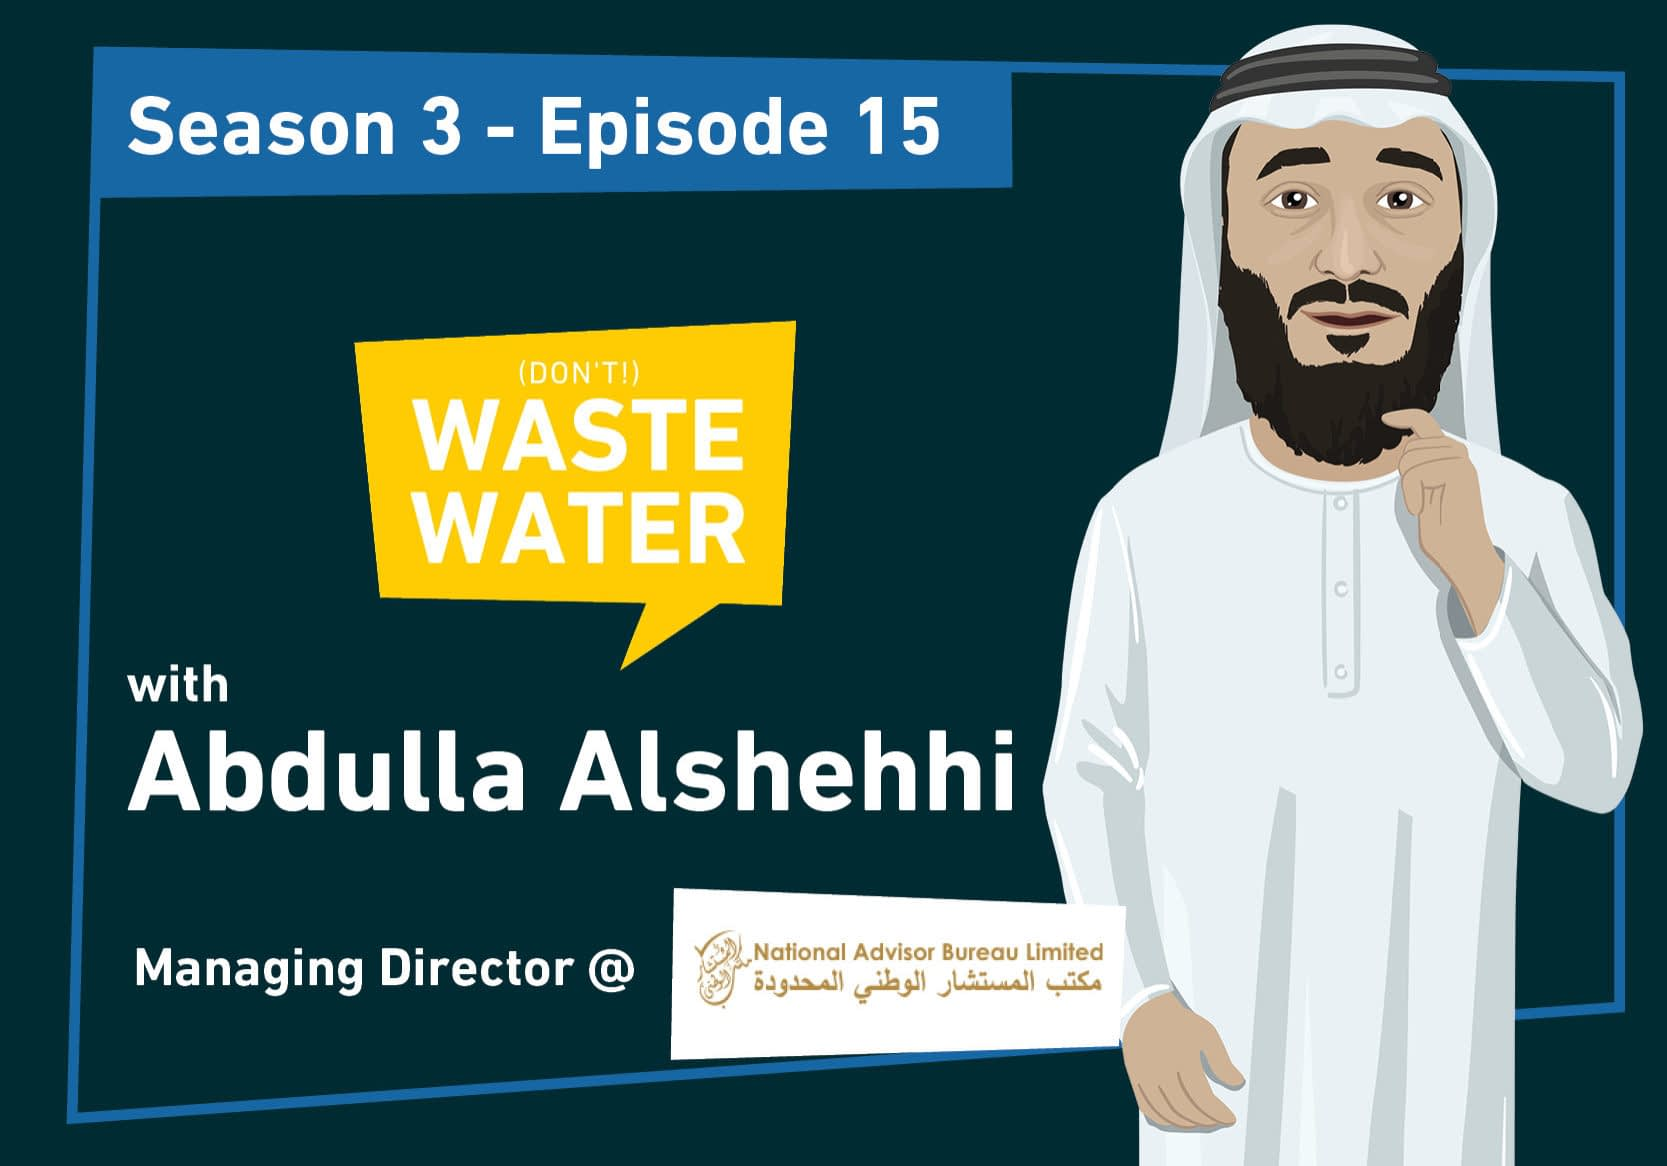 Abdulla Alshehhi - Guest of the Don't Waste Water podcast